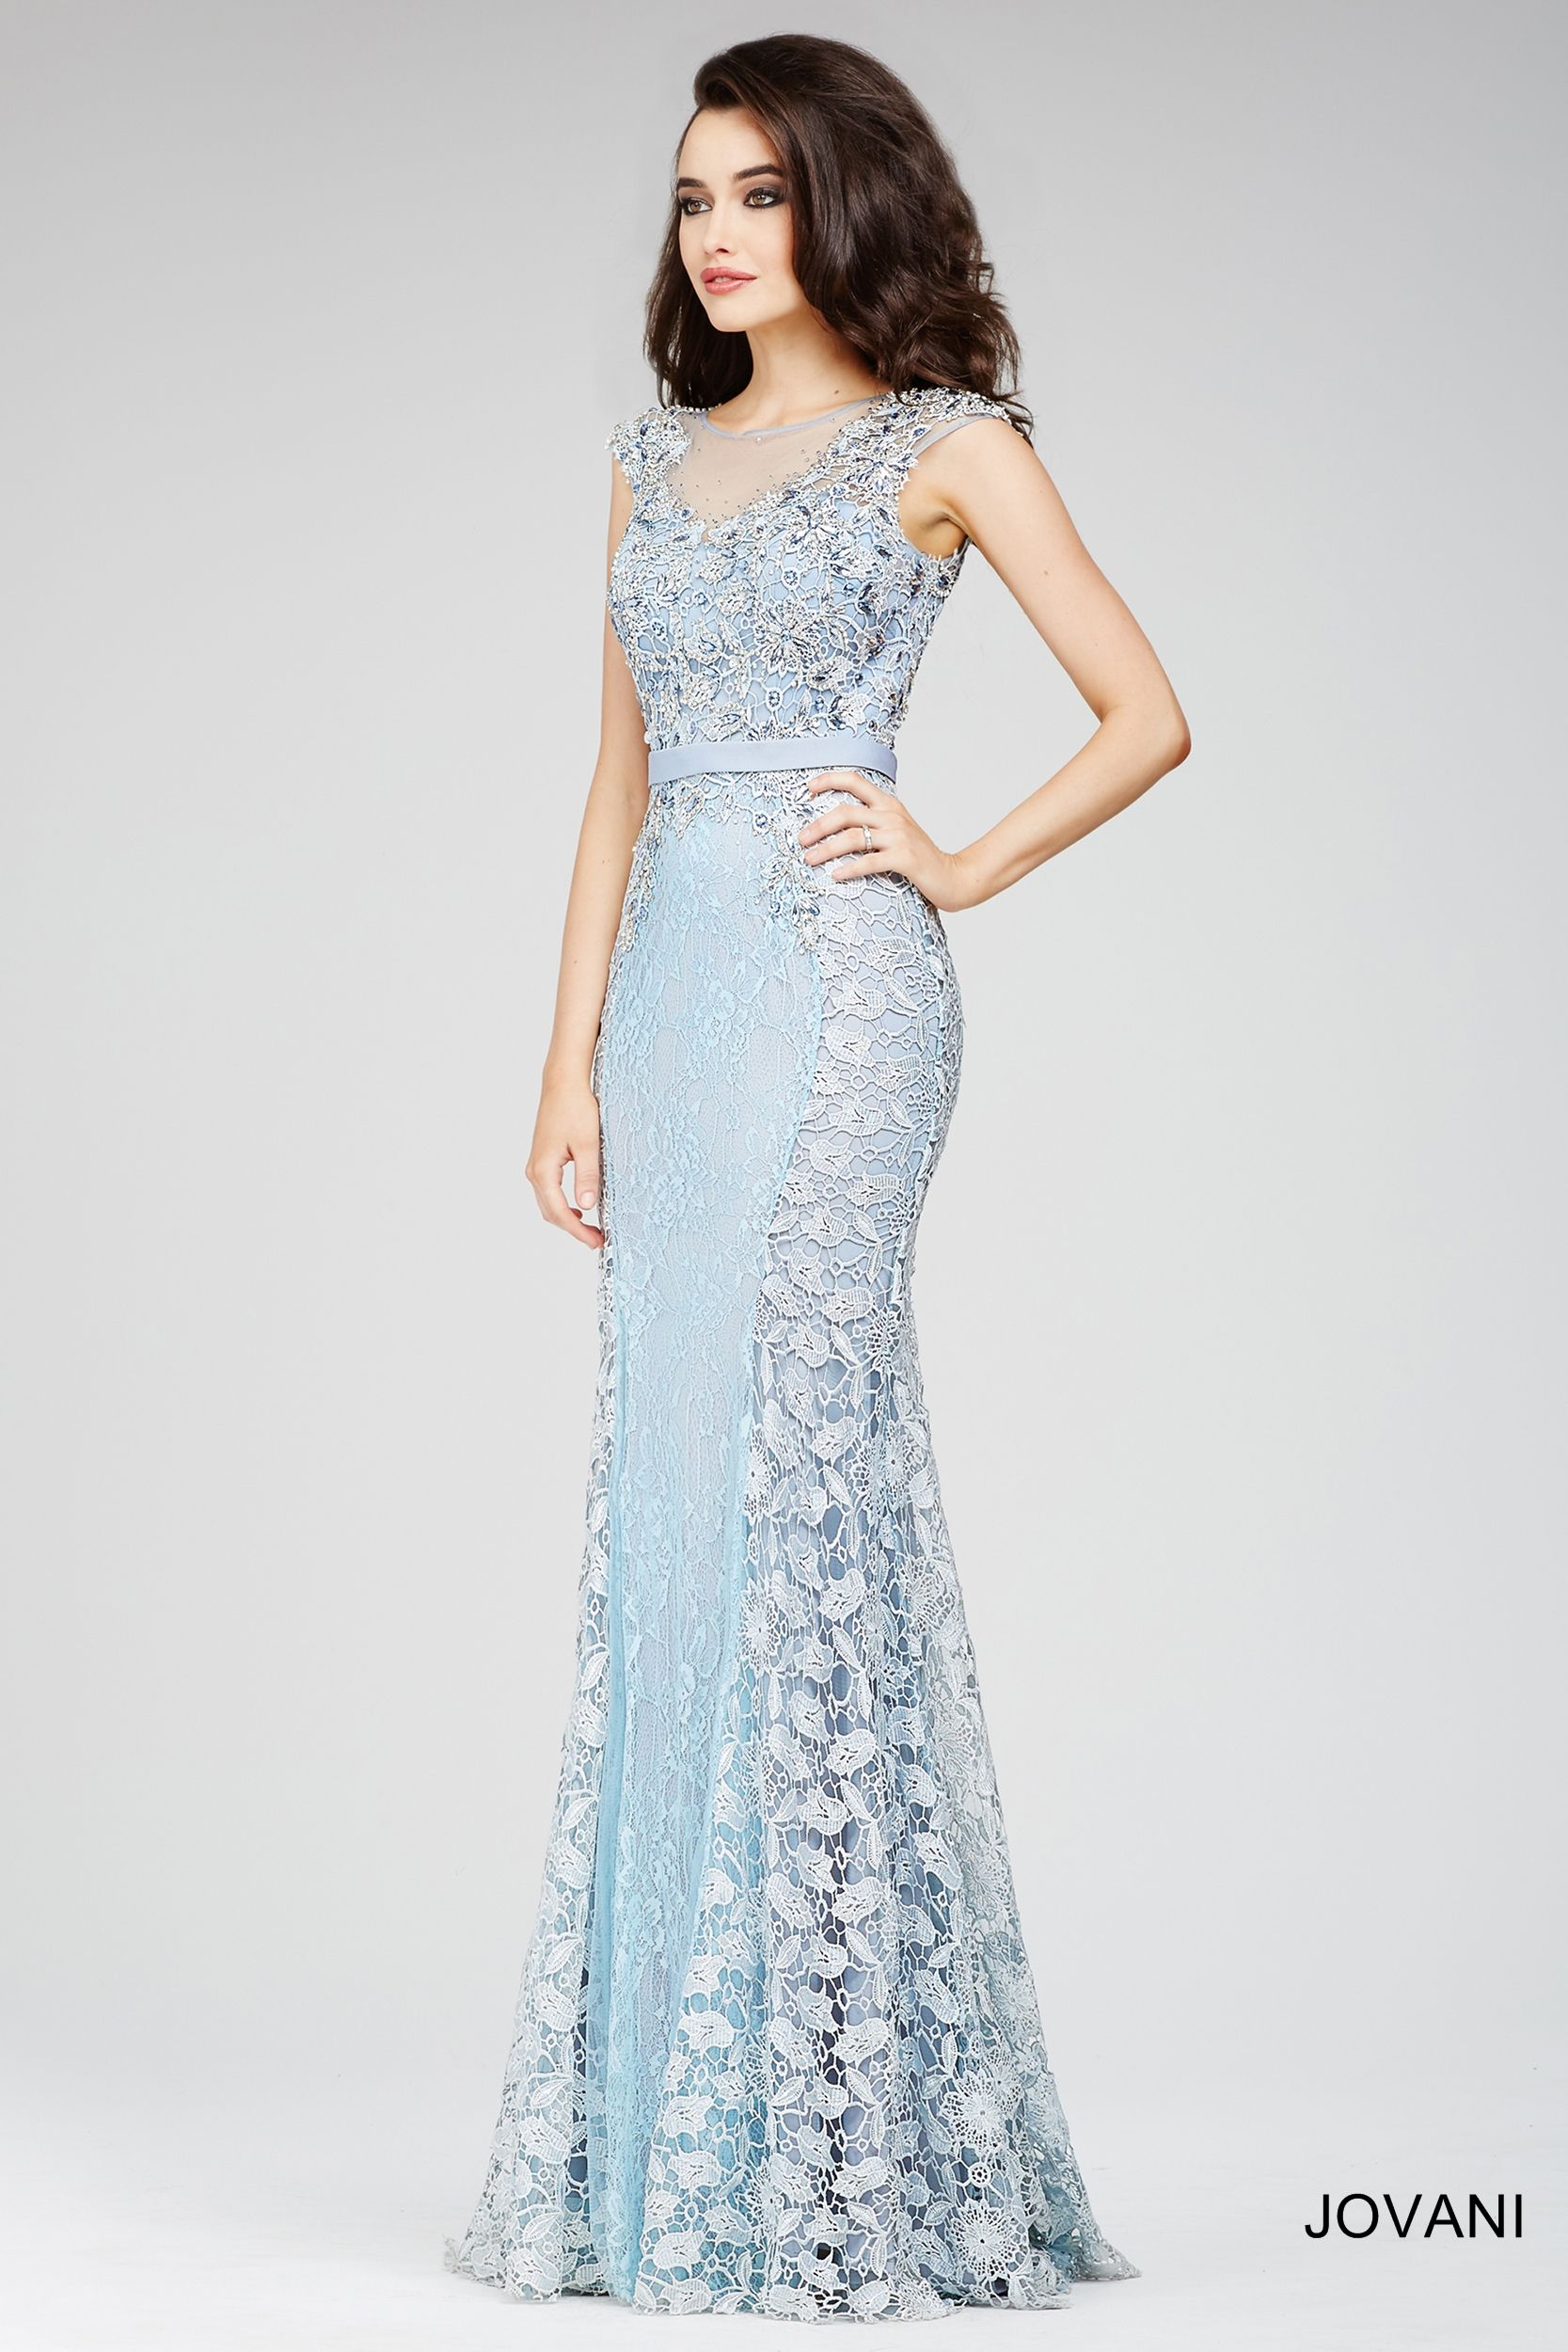 Stunning blue illusion sheath dress features cap sleeves and floral